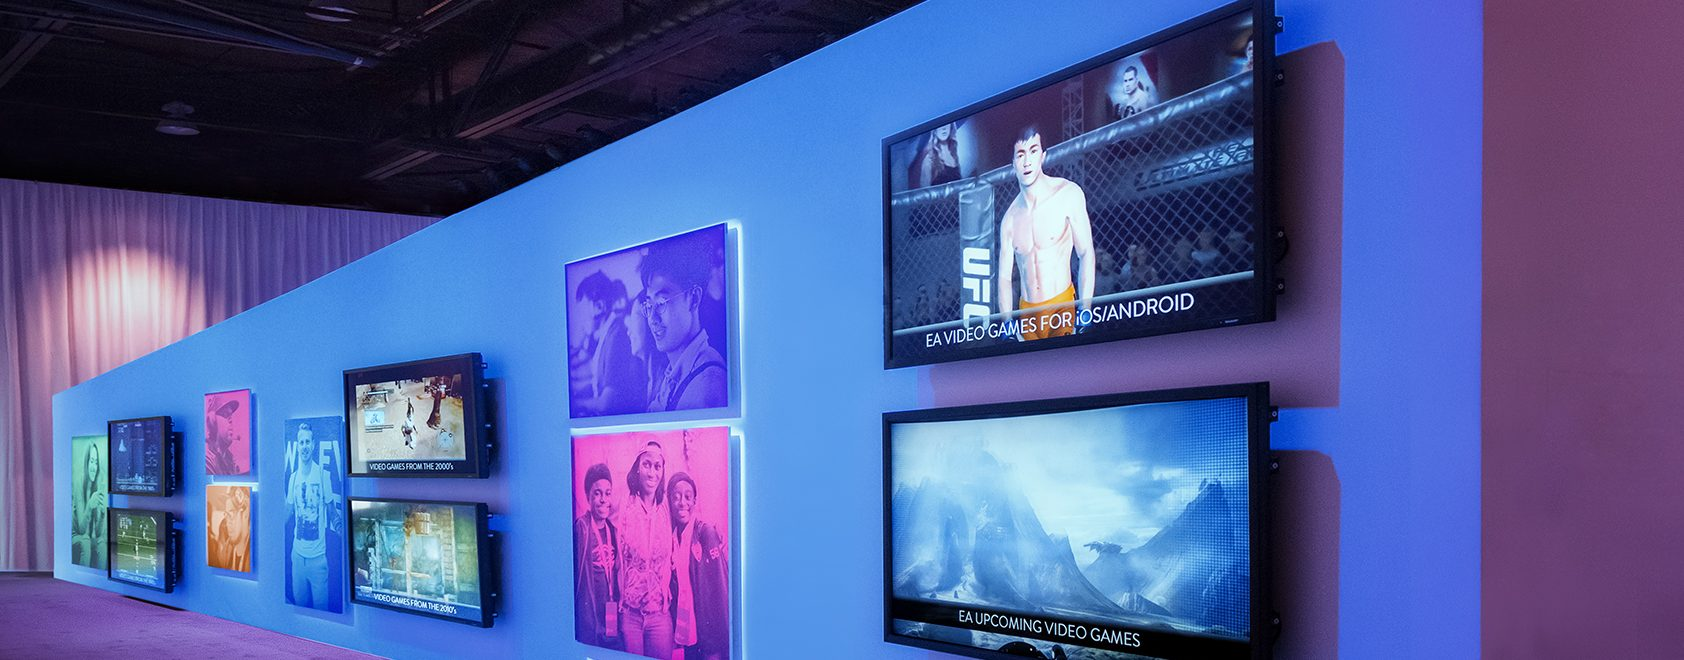 Graphic display wall with digital signage at EA event